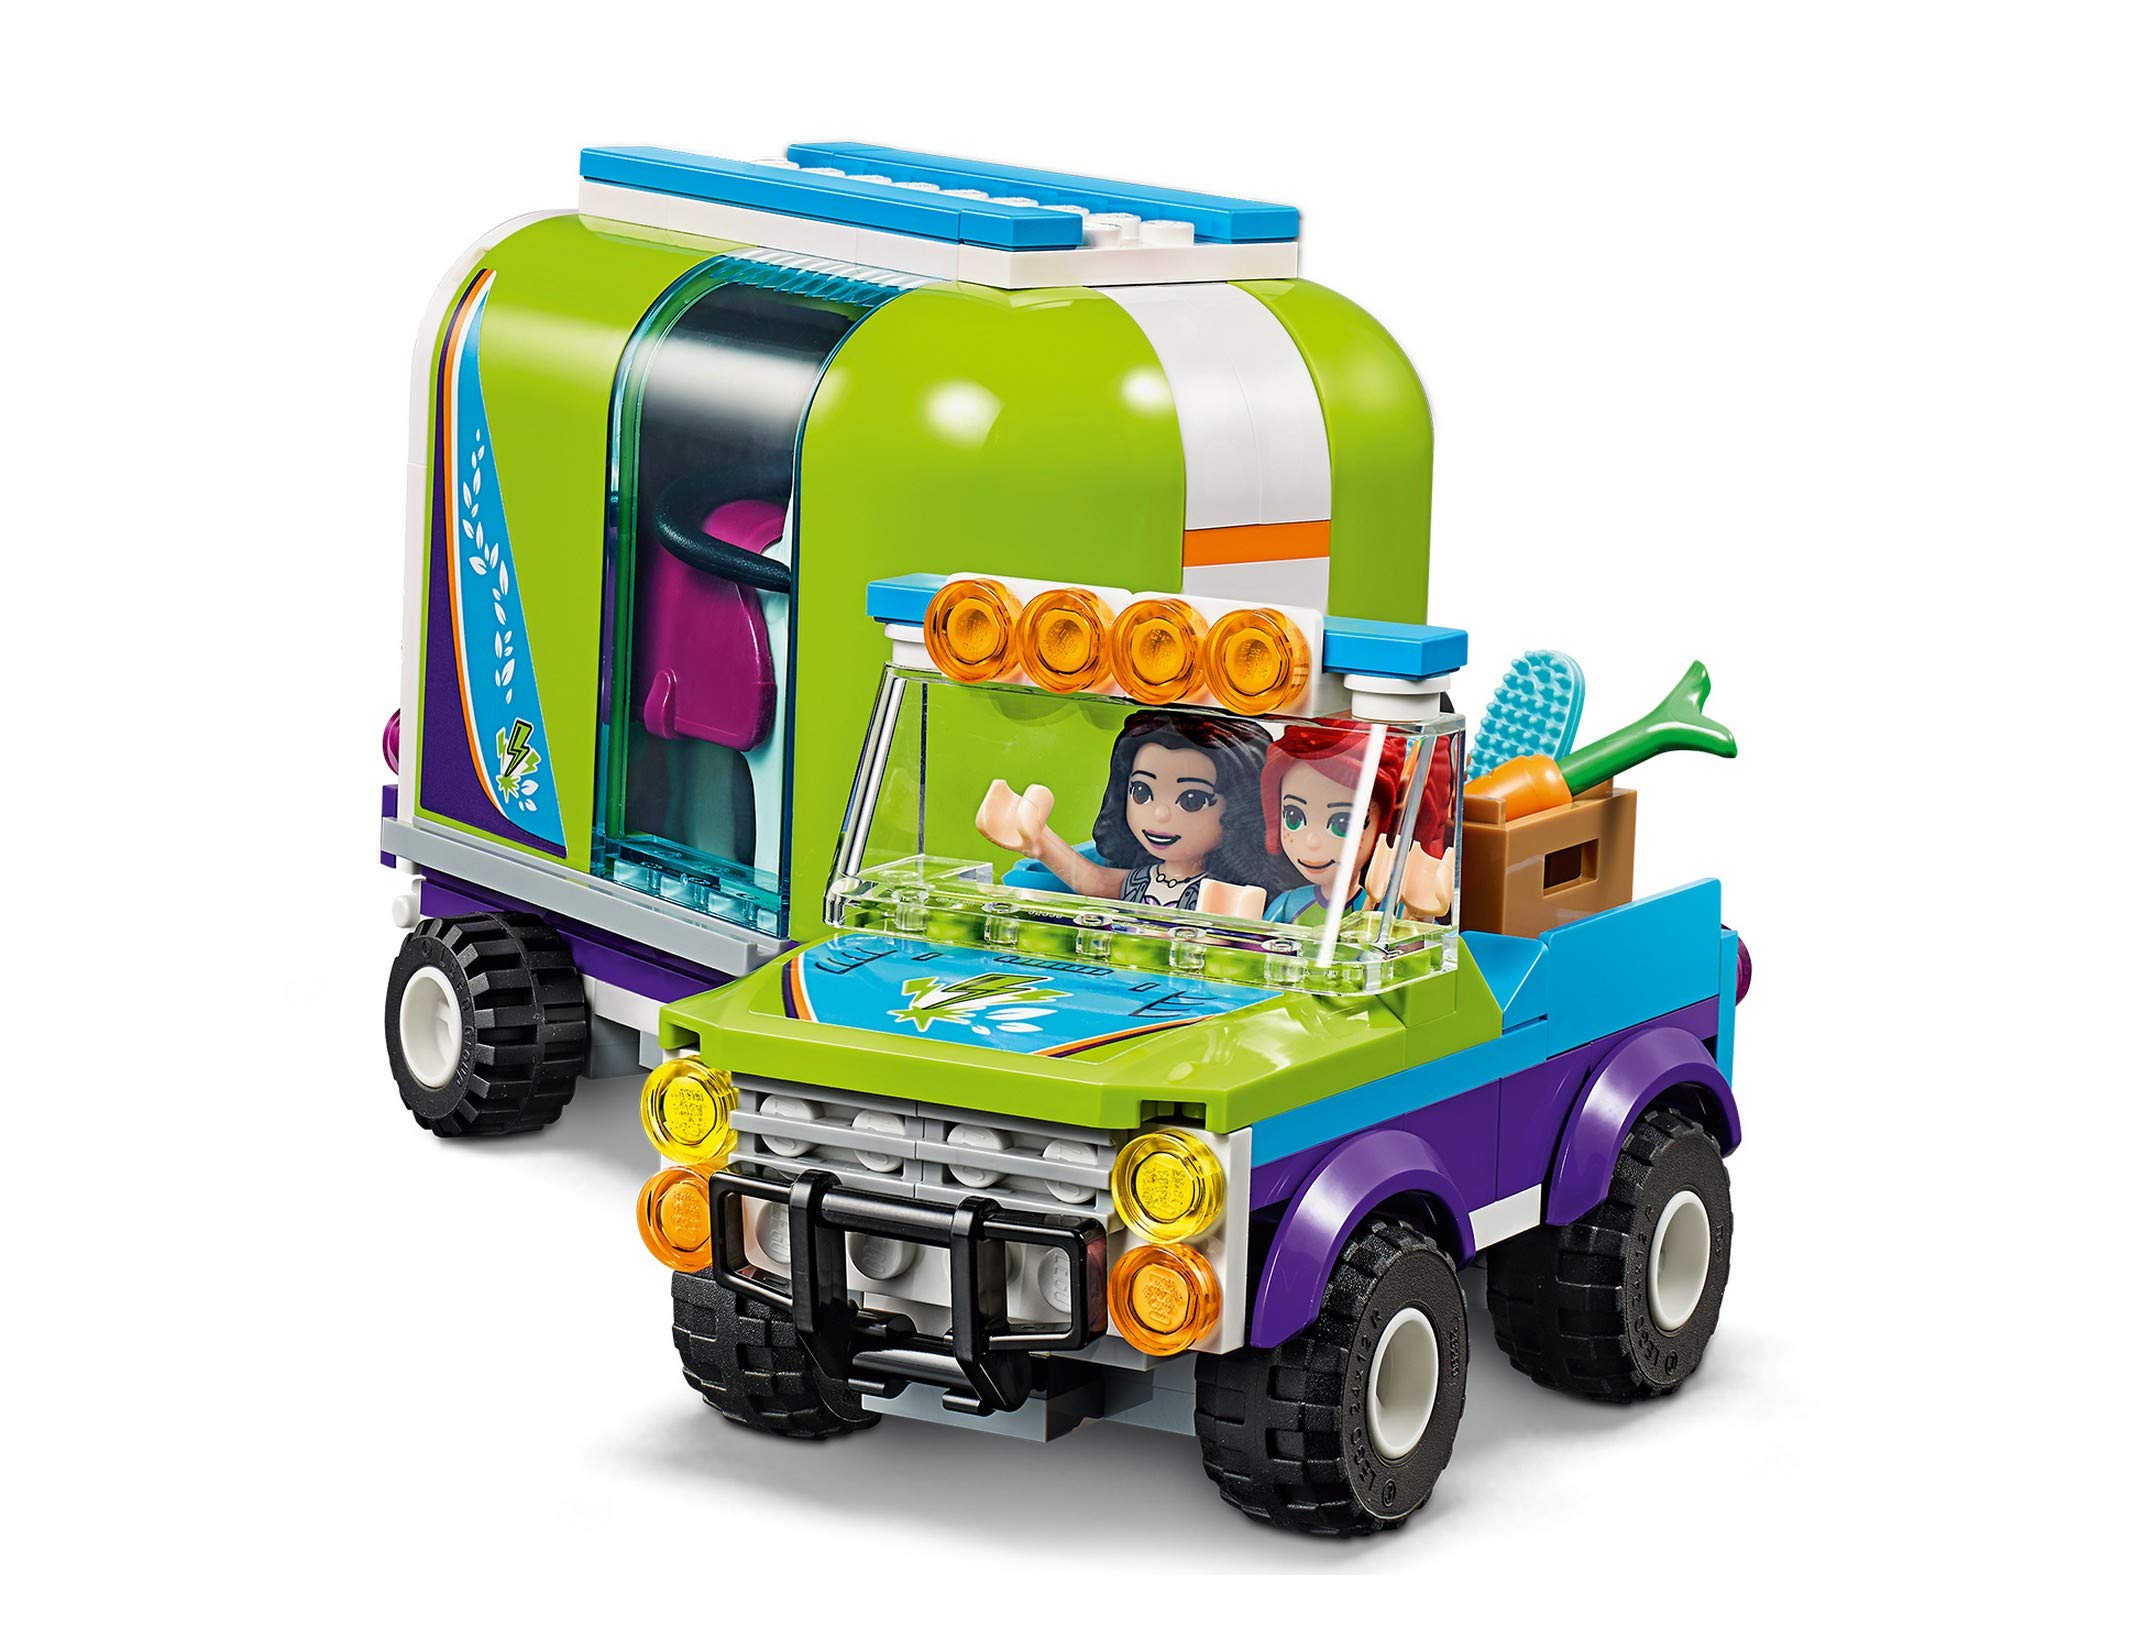 LEGO - Friends Il rimorchio dei cavalli di Mia, Set di Estensione Stabile, Buggy 4x4, Mini-doll Mia ed Emma, Idea Regalo… 5 spesavip